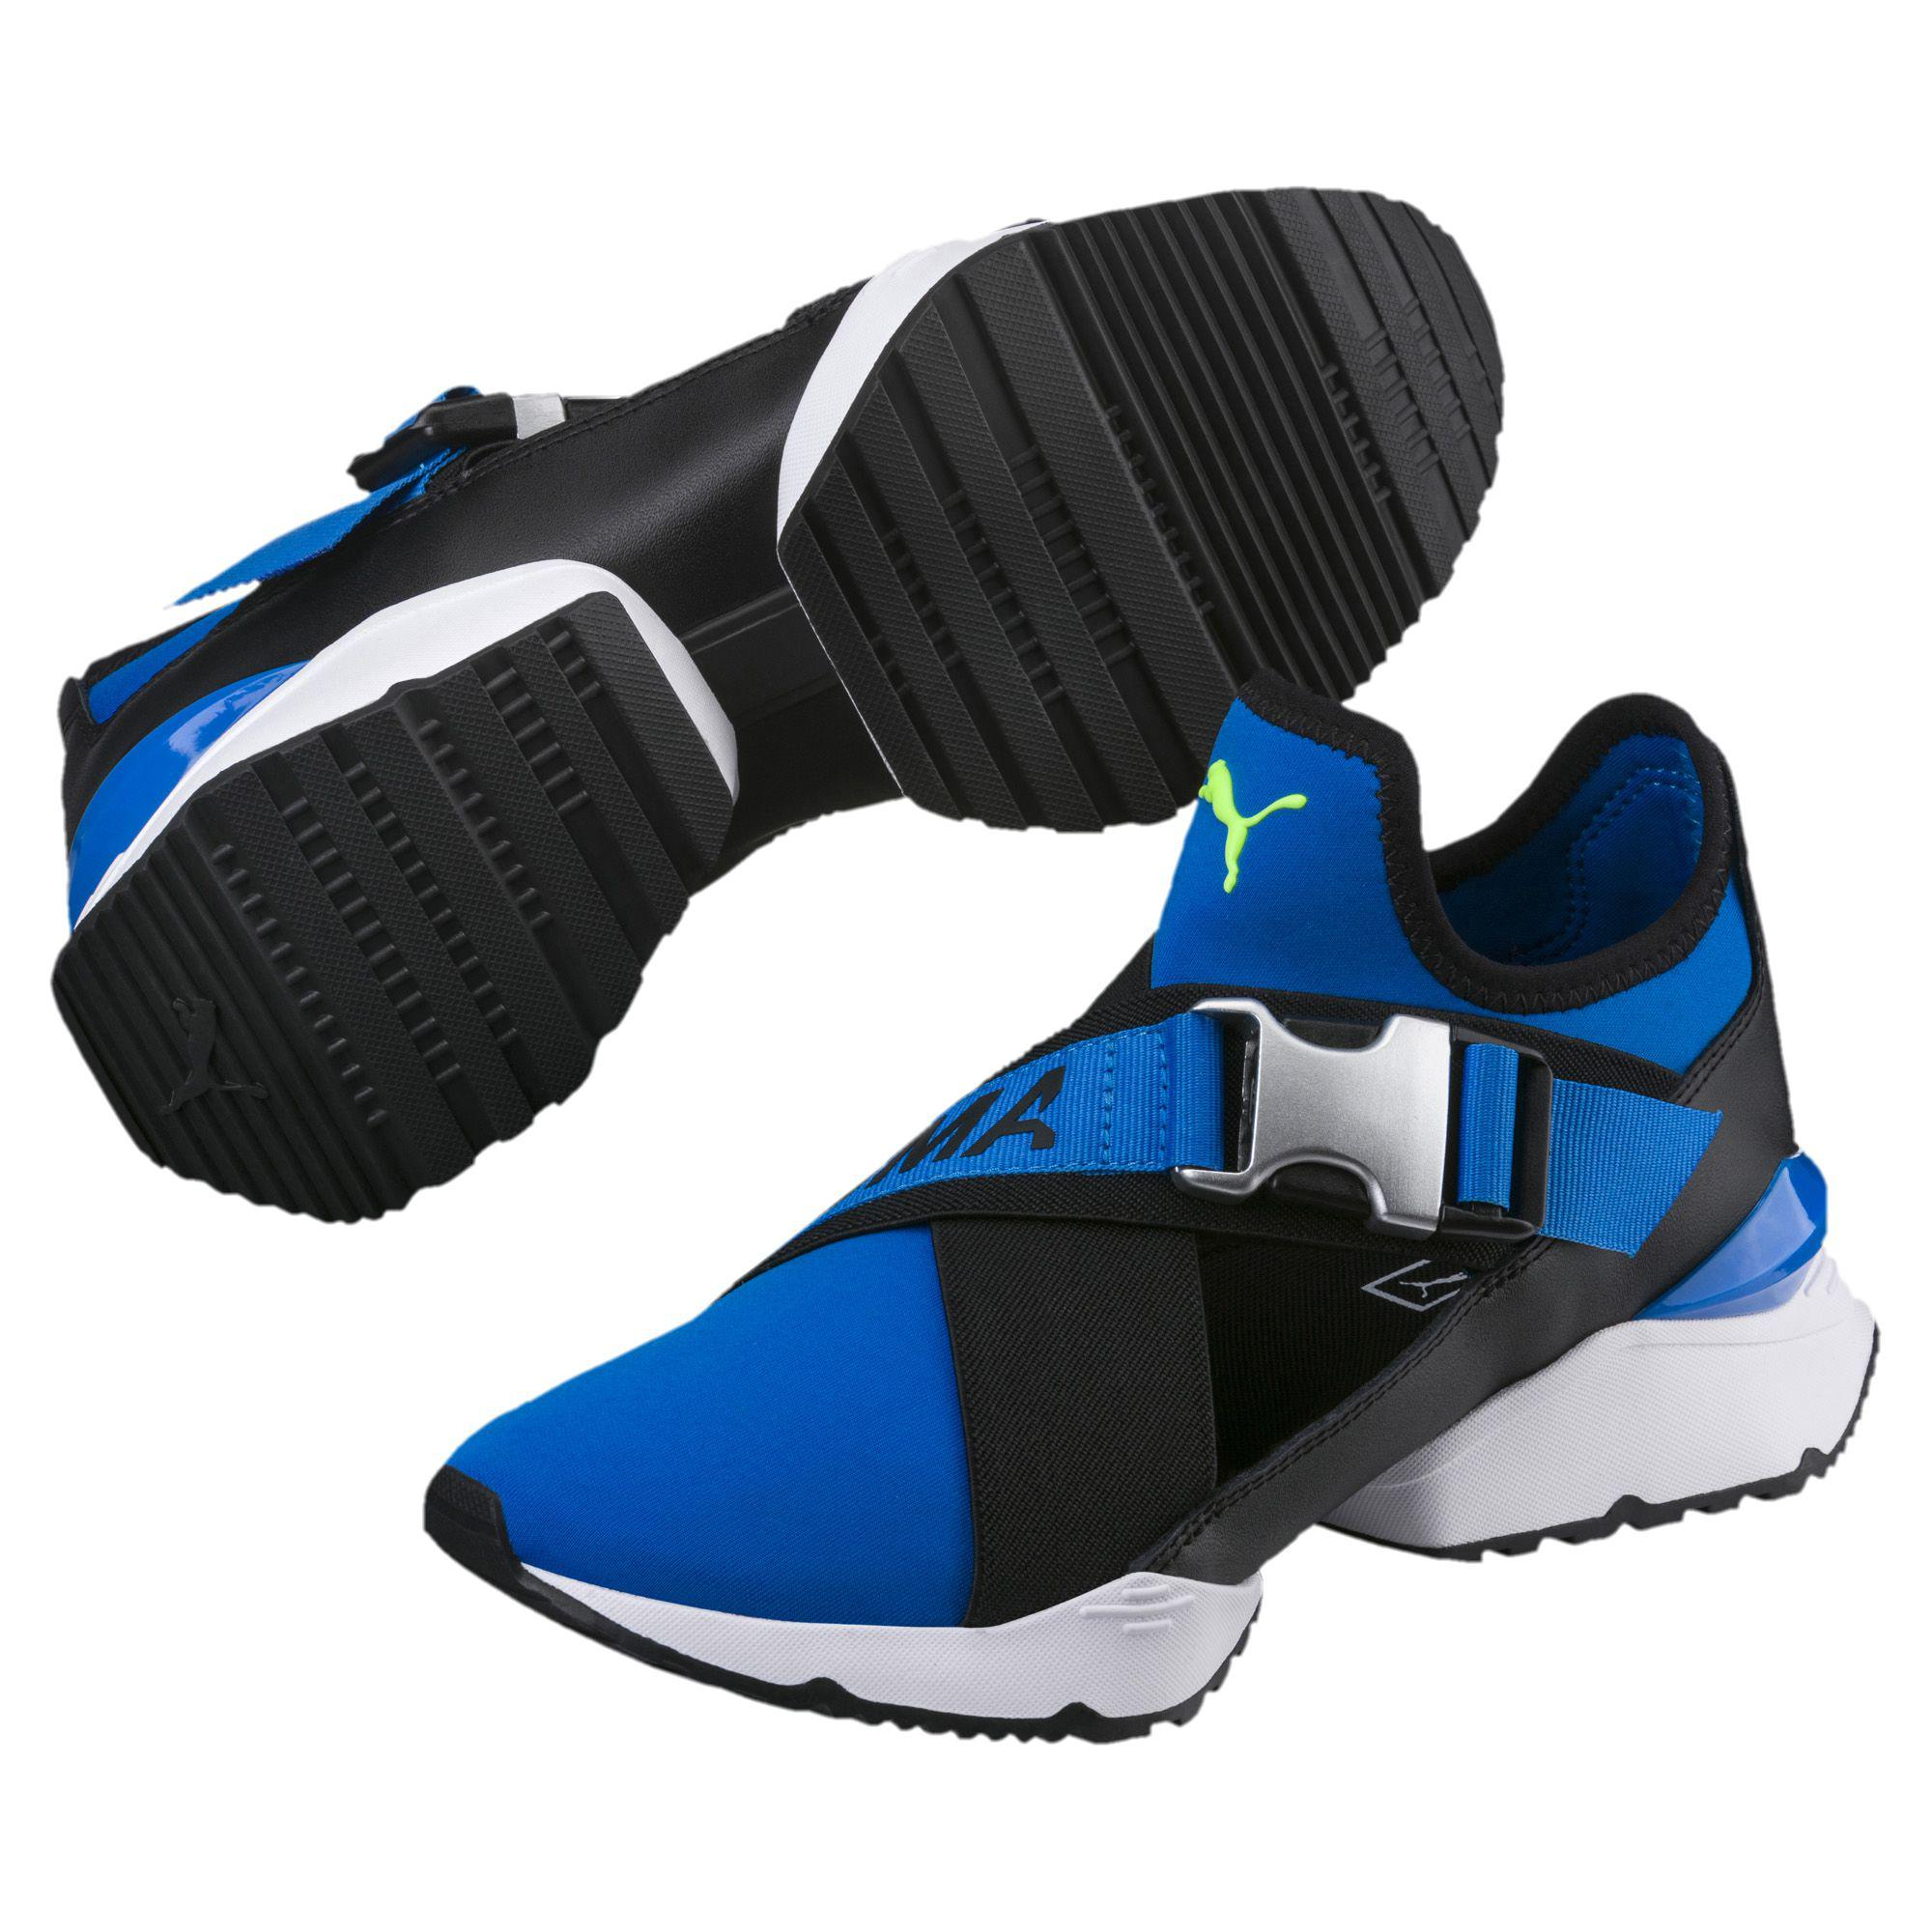 401ae9b8a54d Puma Cut Sneakers View Fullscreen Lyst Muse Out Women s Blue xxrzE1wqO